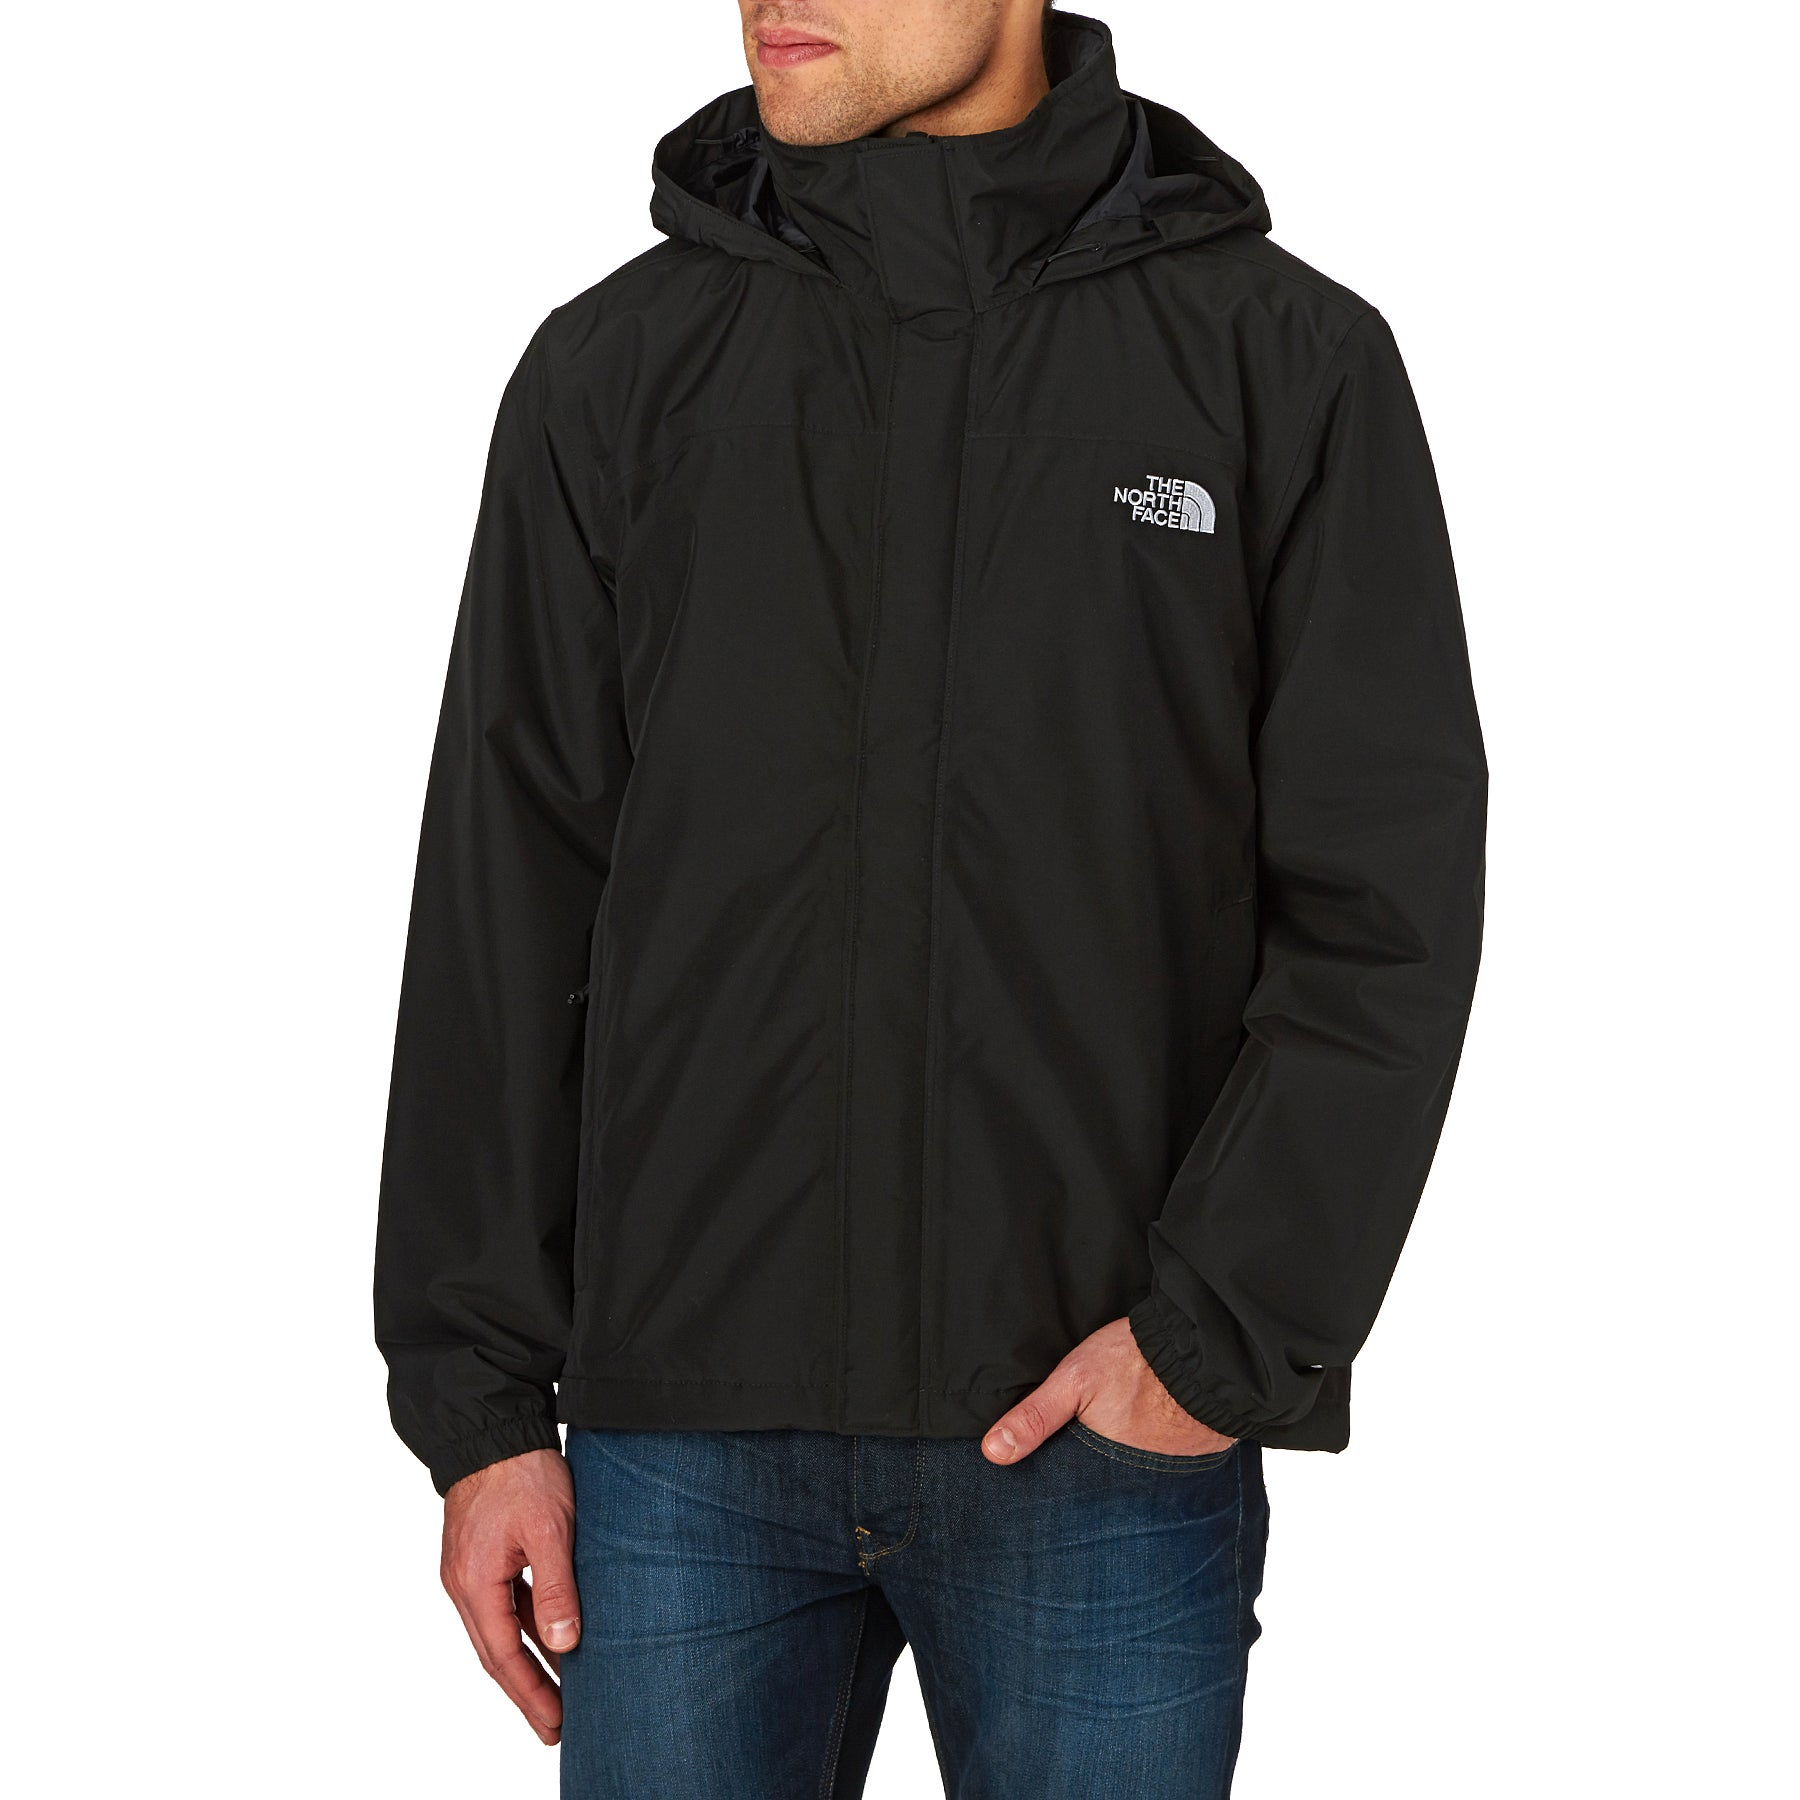 358464835 North Face Insulated Resolve Jacket - Free Delivery options on All ...